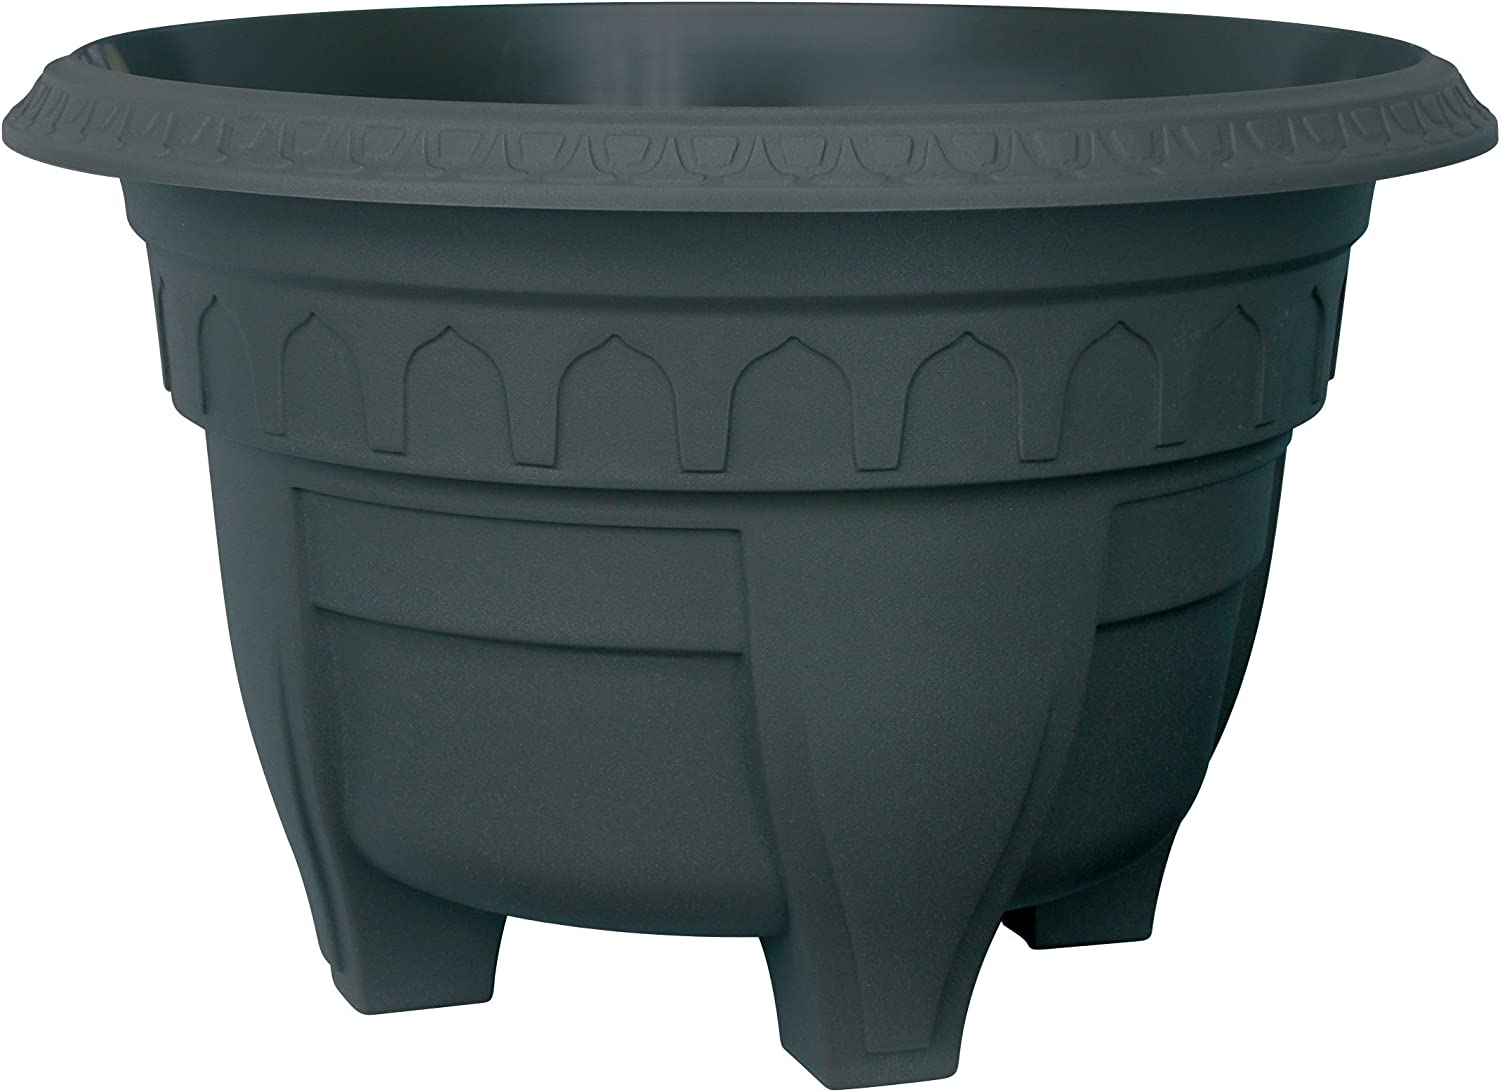 DCN Plastic 1410BK Azura Round Patio Planter, Black